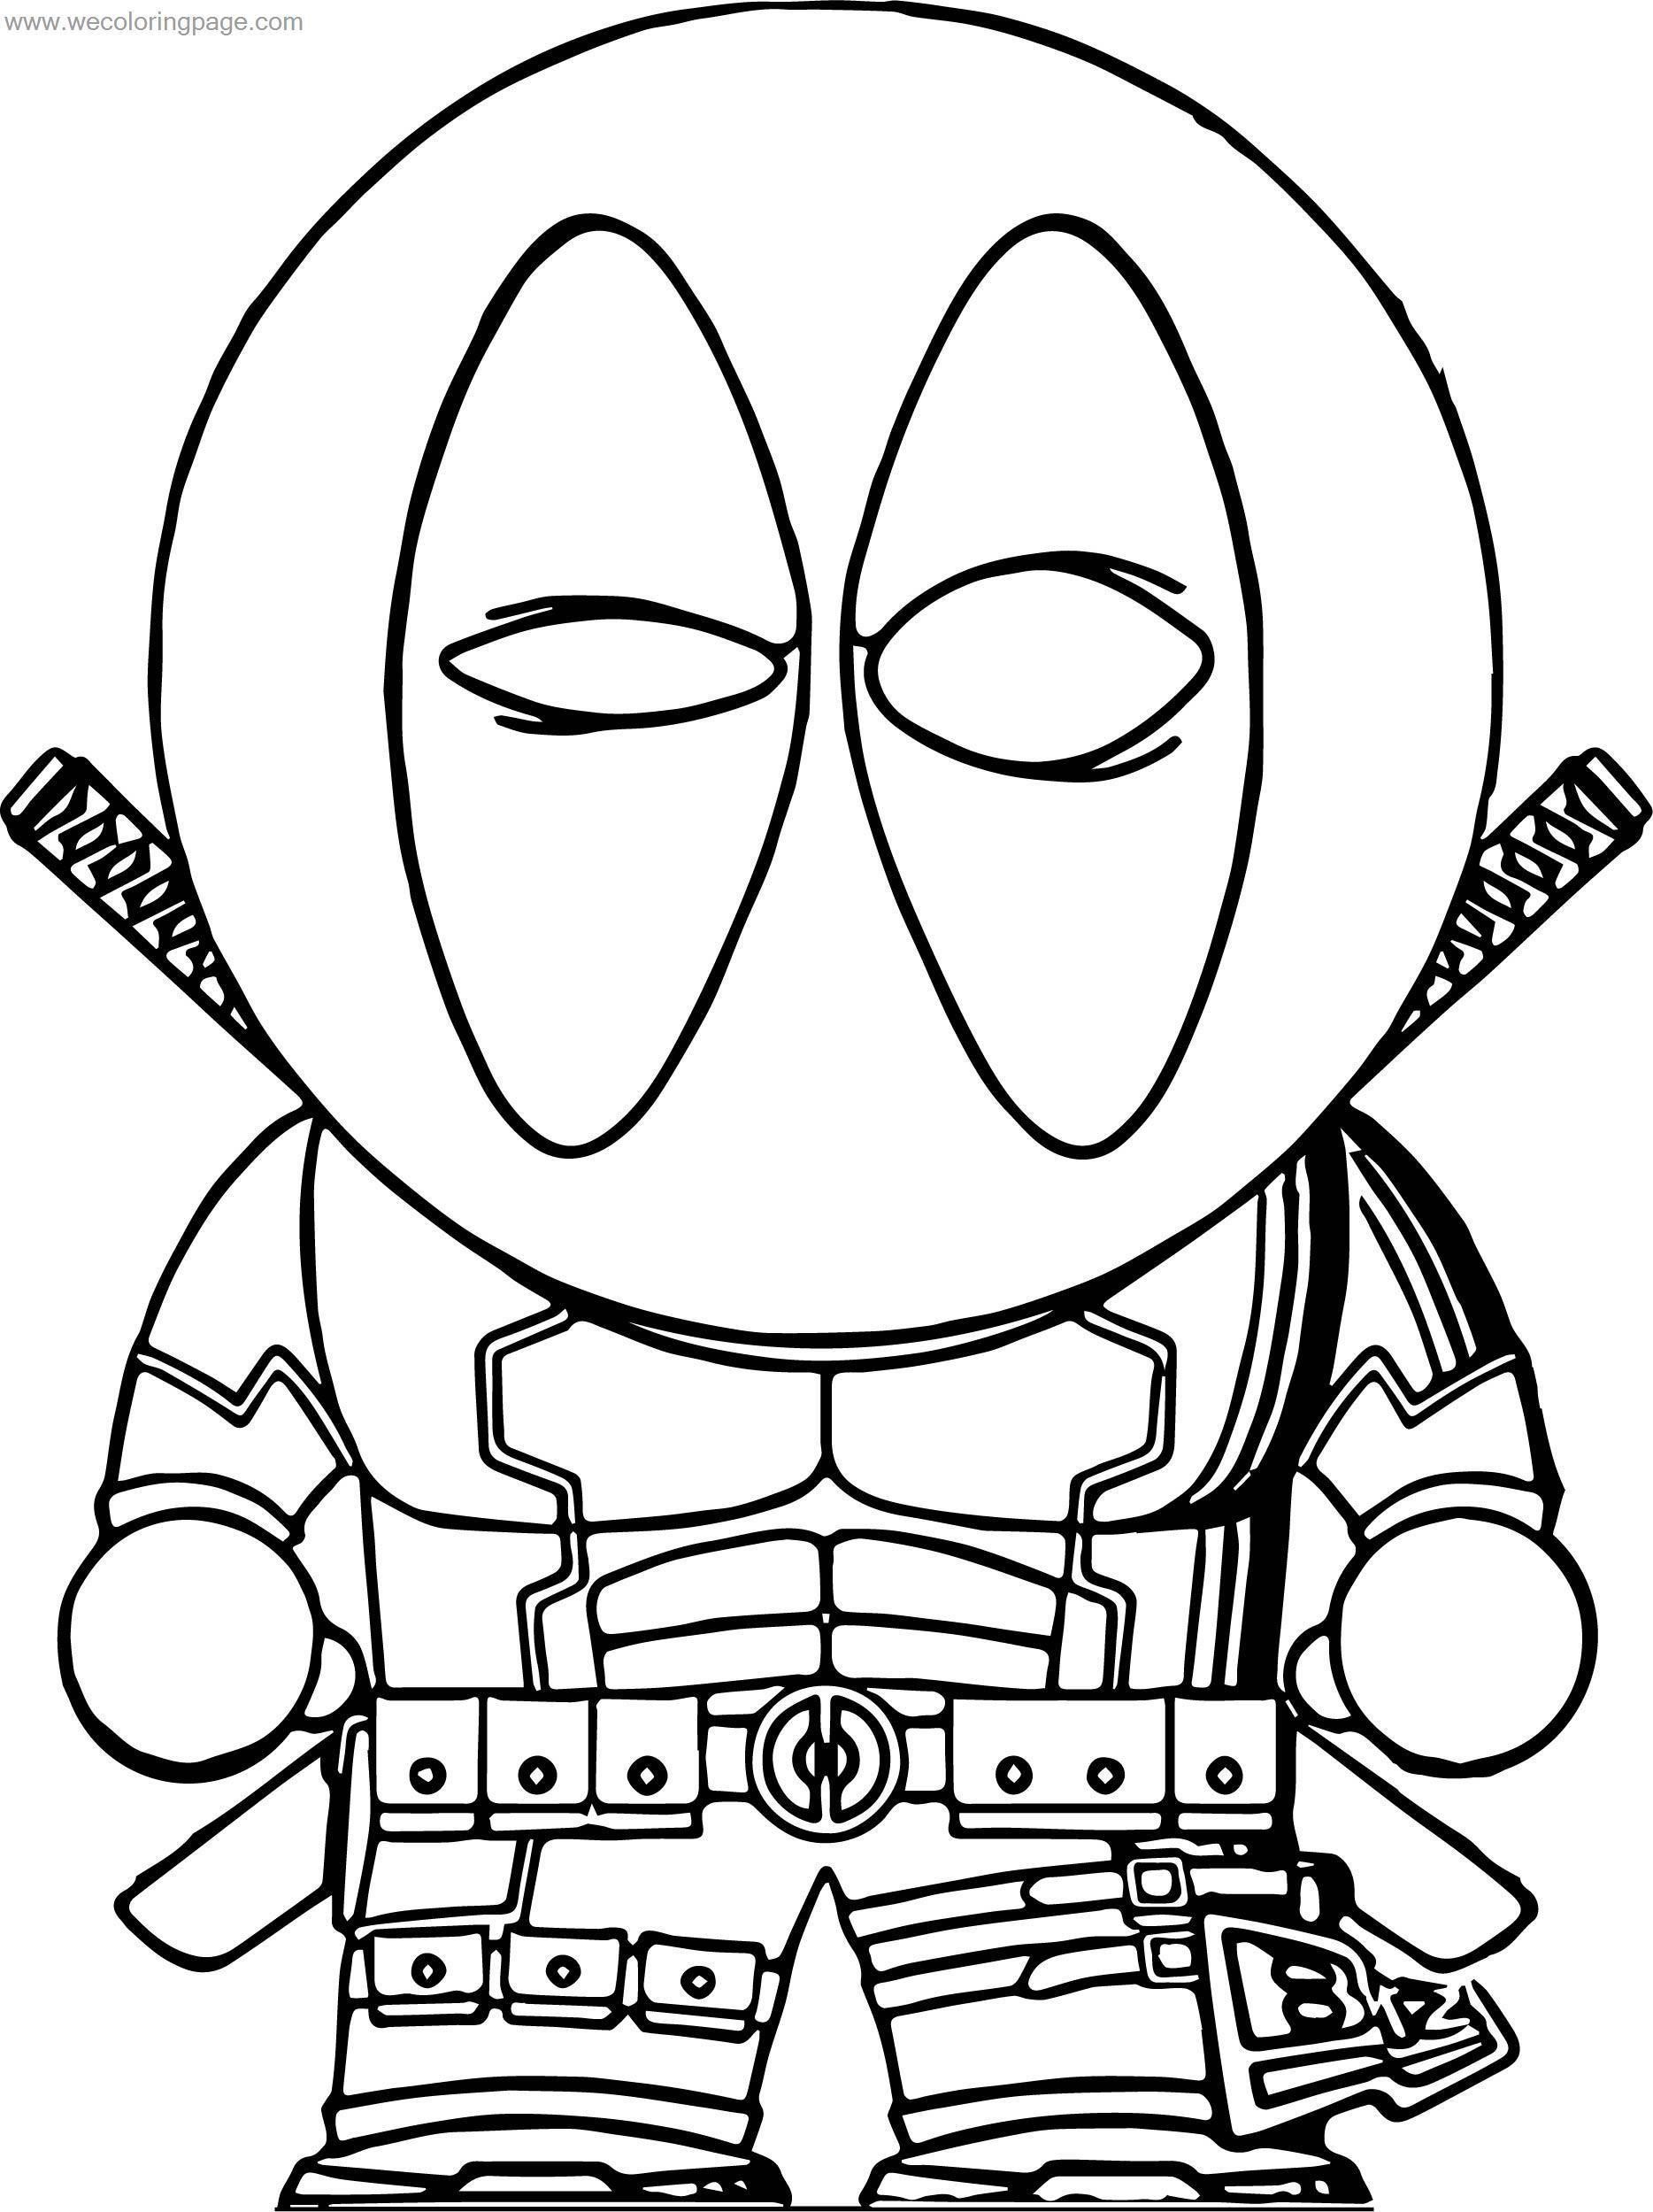 Old Deadpol Coloring Page